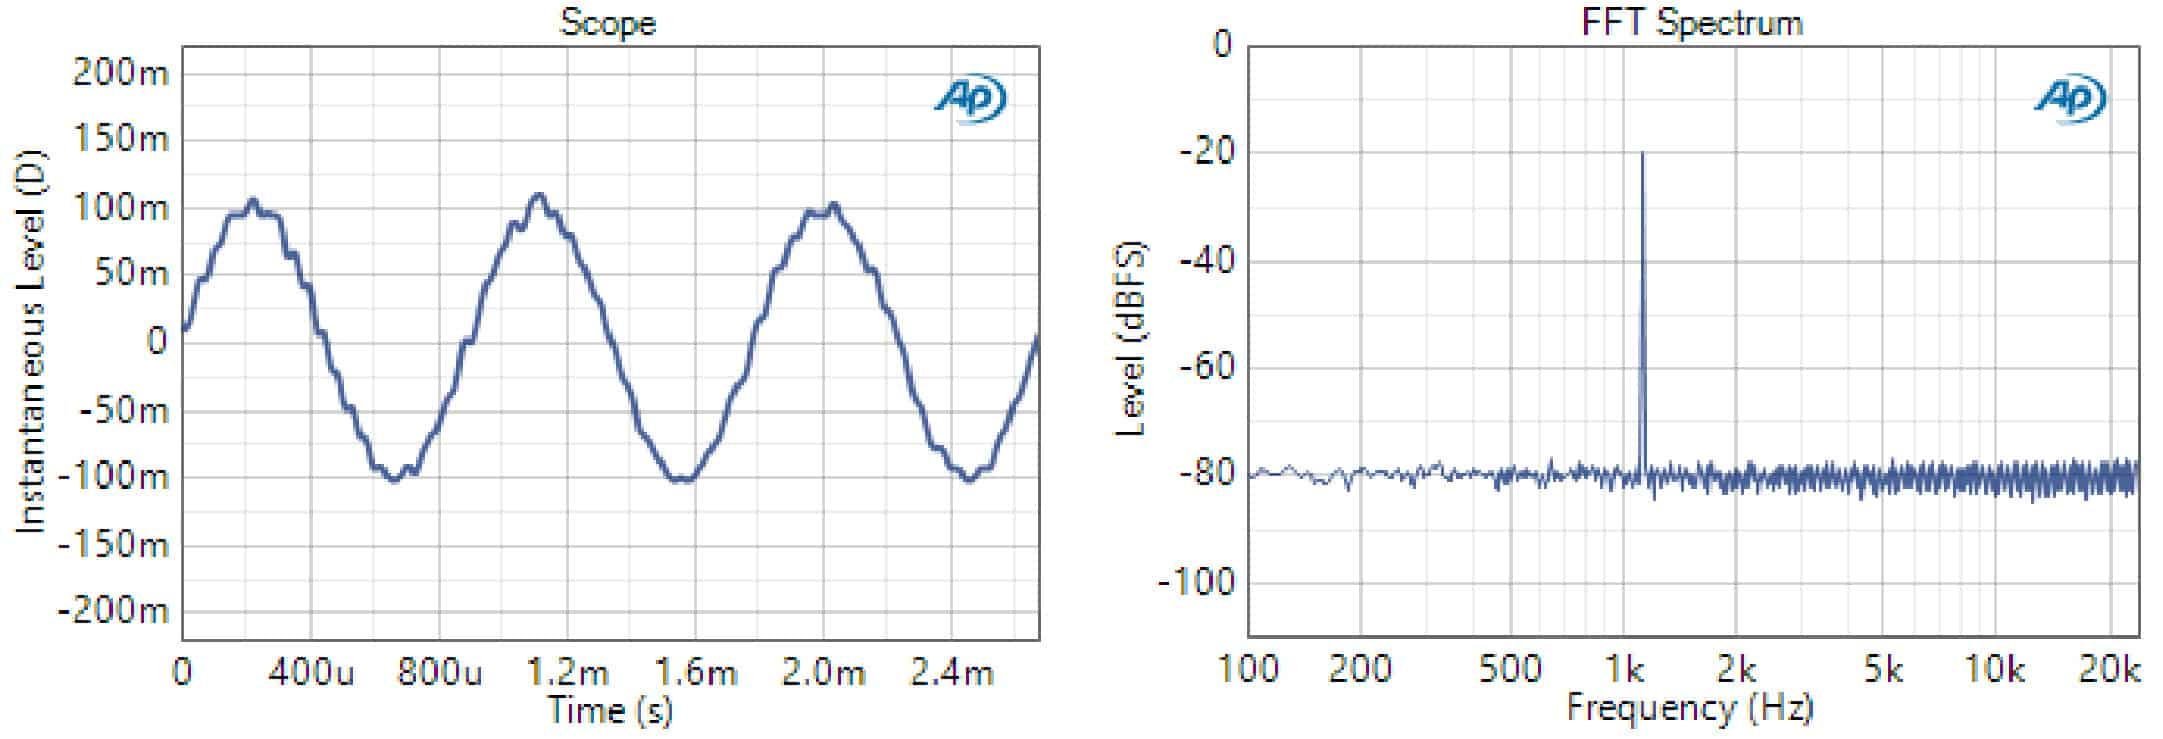 Figure 1. Waveform and 16k FFT Spectrum of a 48 kHz Fs digital sine signal with 8-bit dither (level = -20 dBFS; frequency = 1125 Hz).